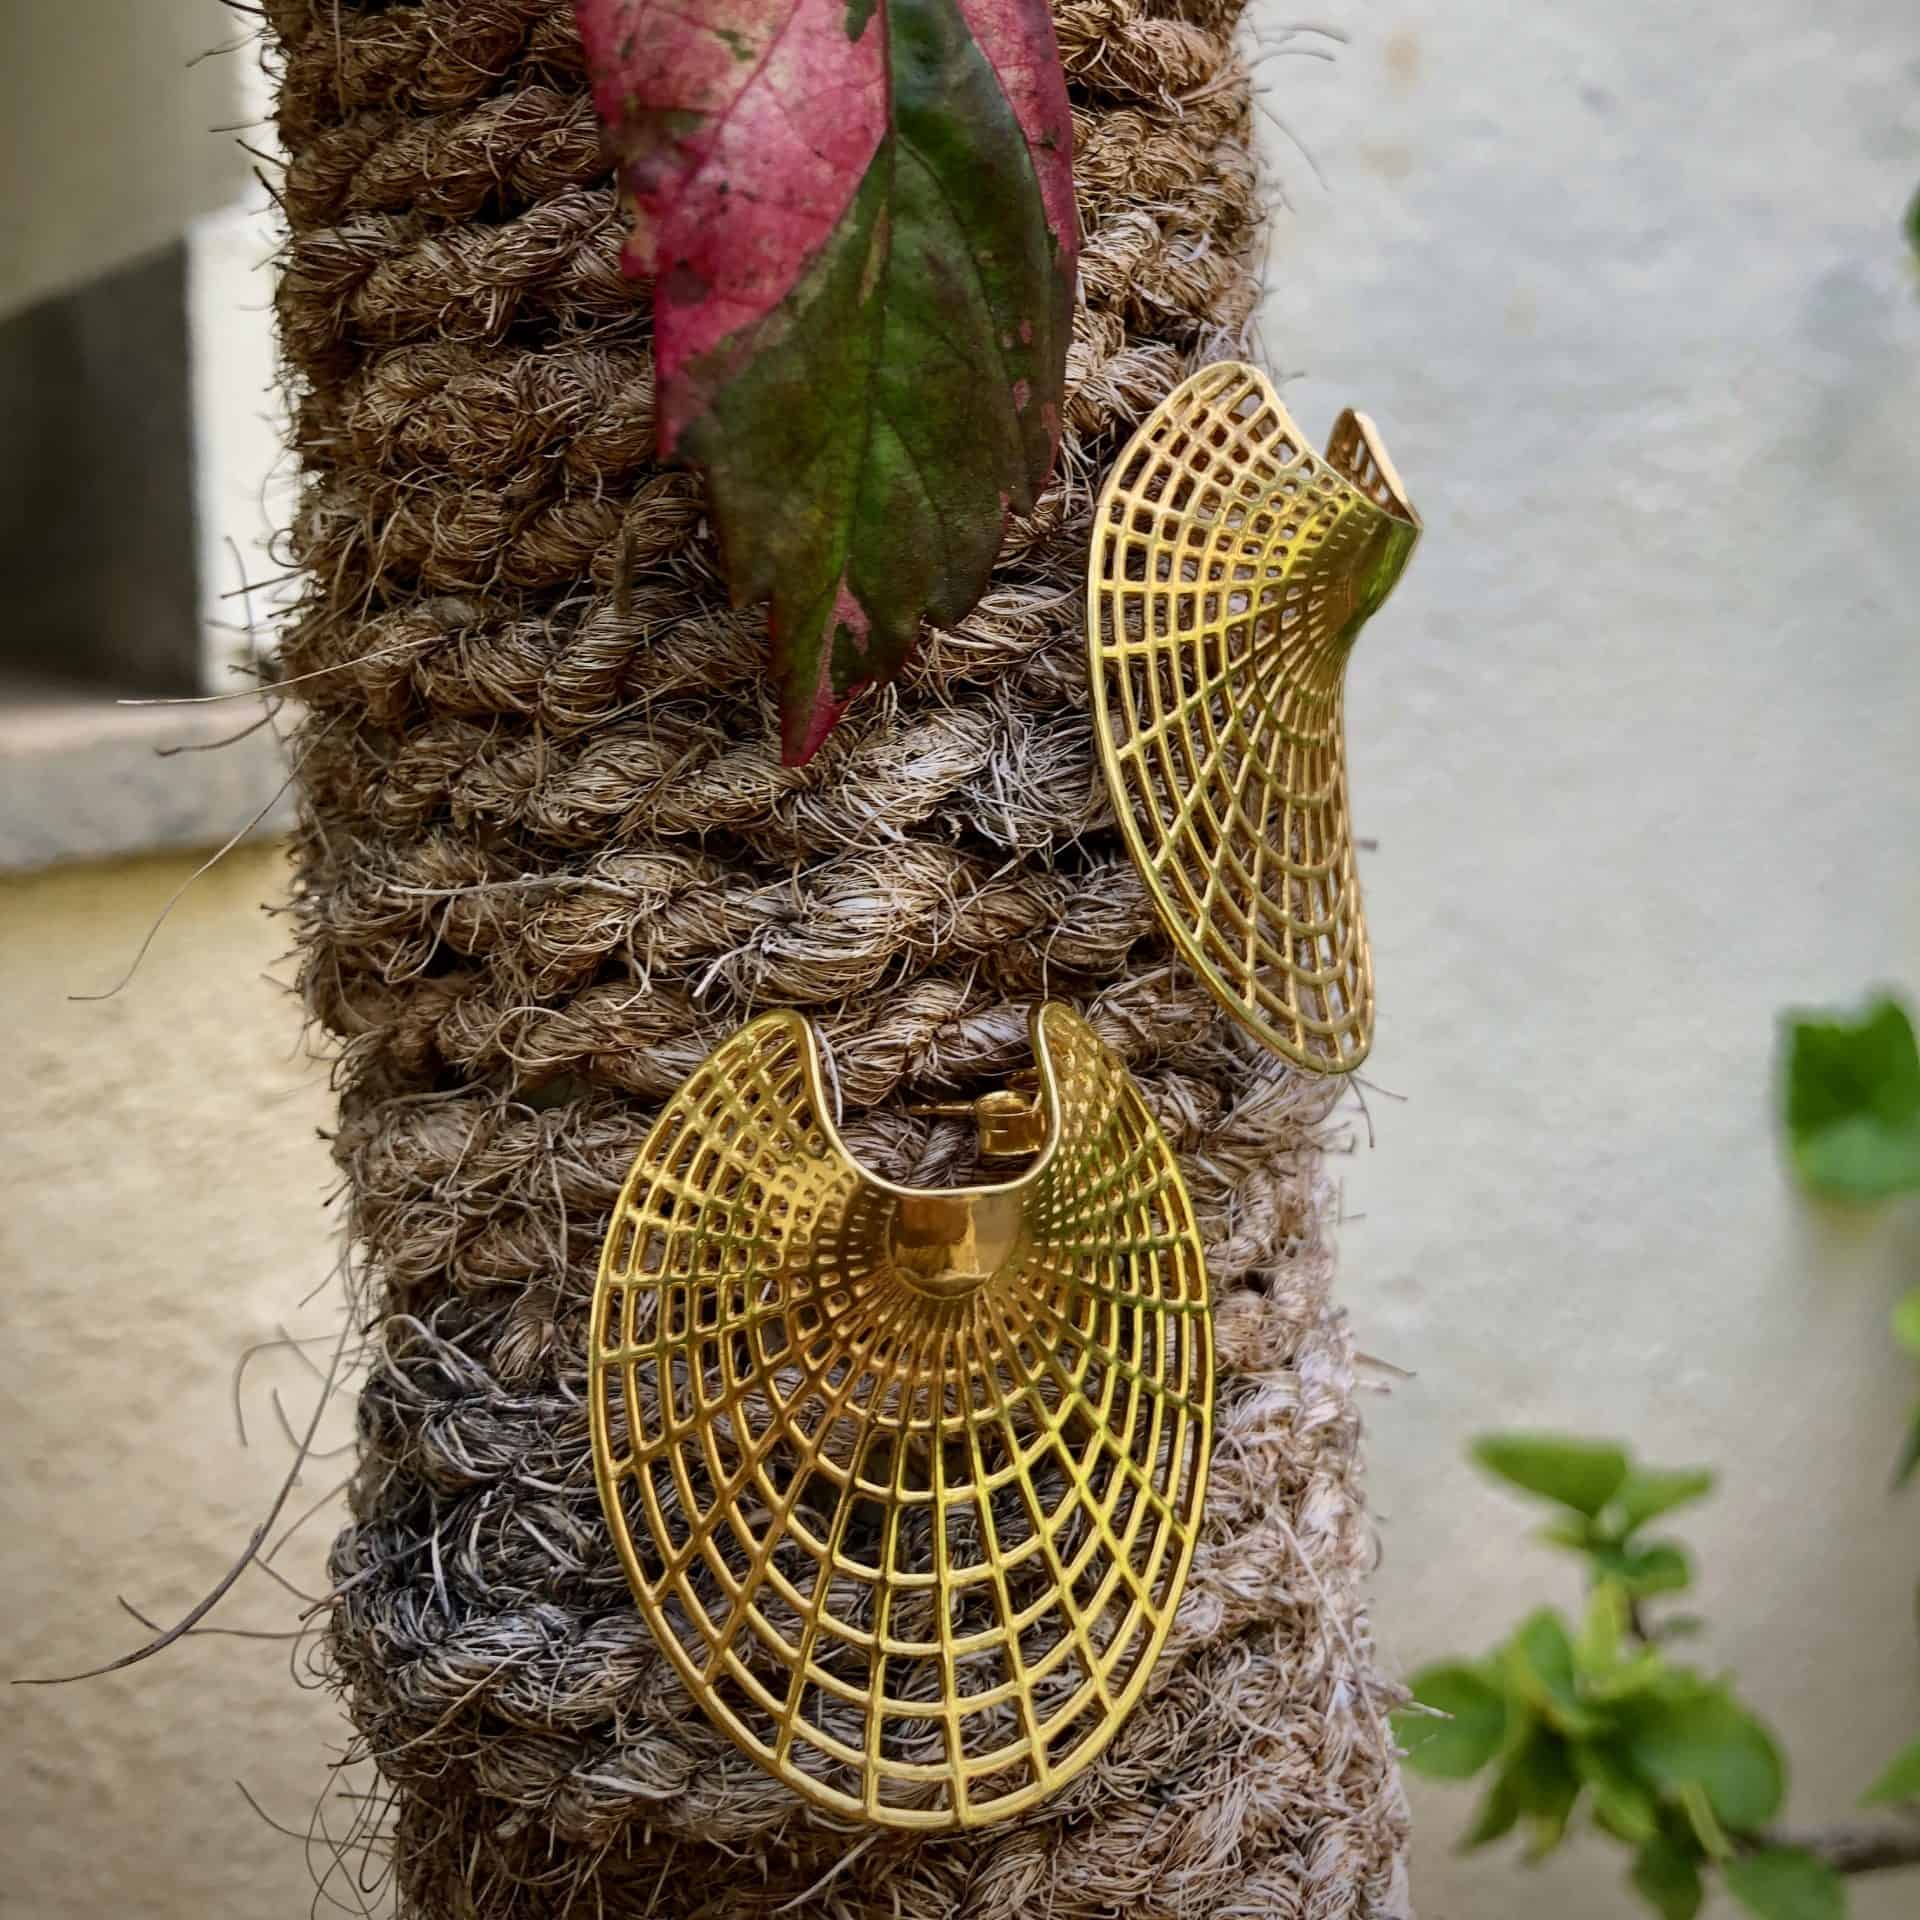 Image showing ribelli's gold plated sterling silver earrings with a unique shape and design. the earring has a checkered filigree work making it light.